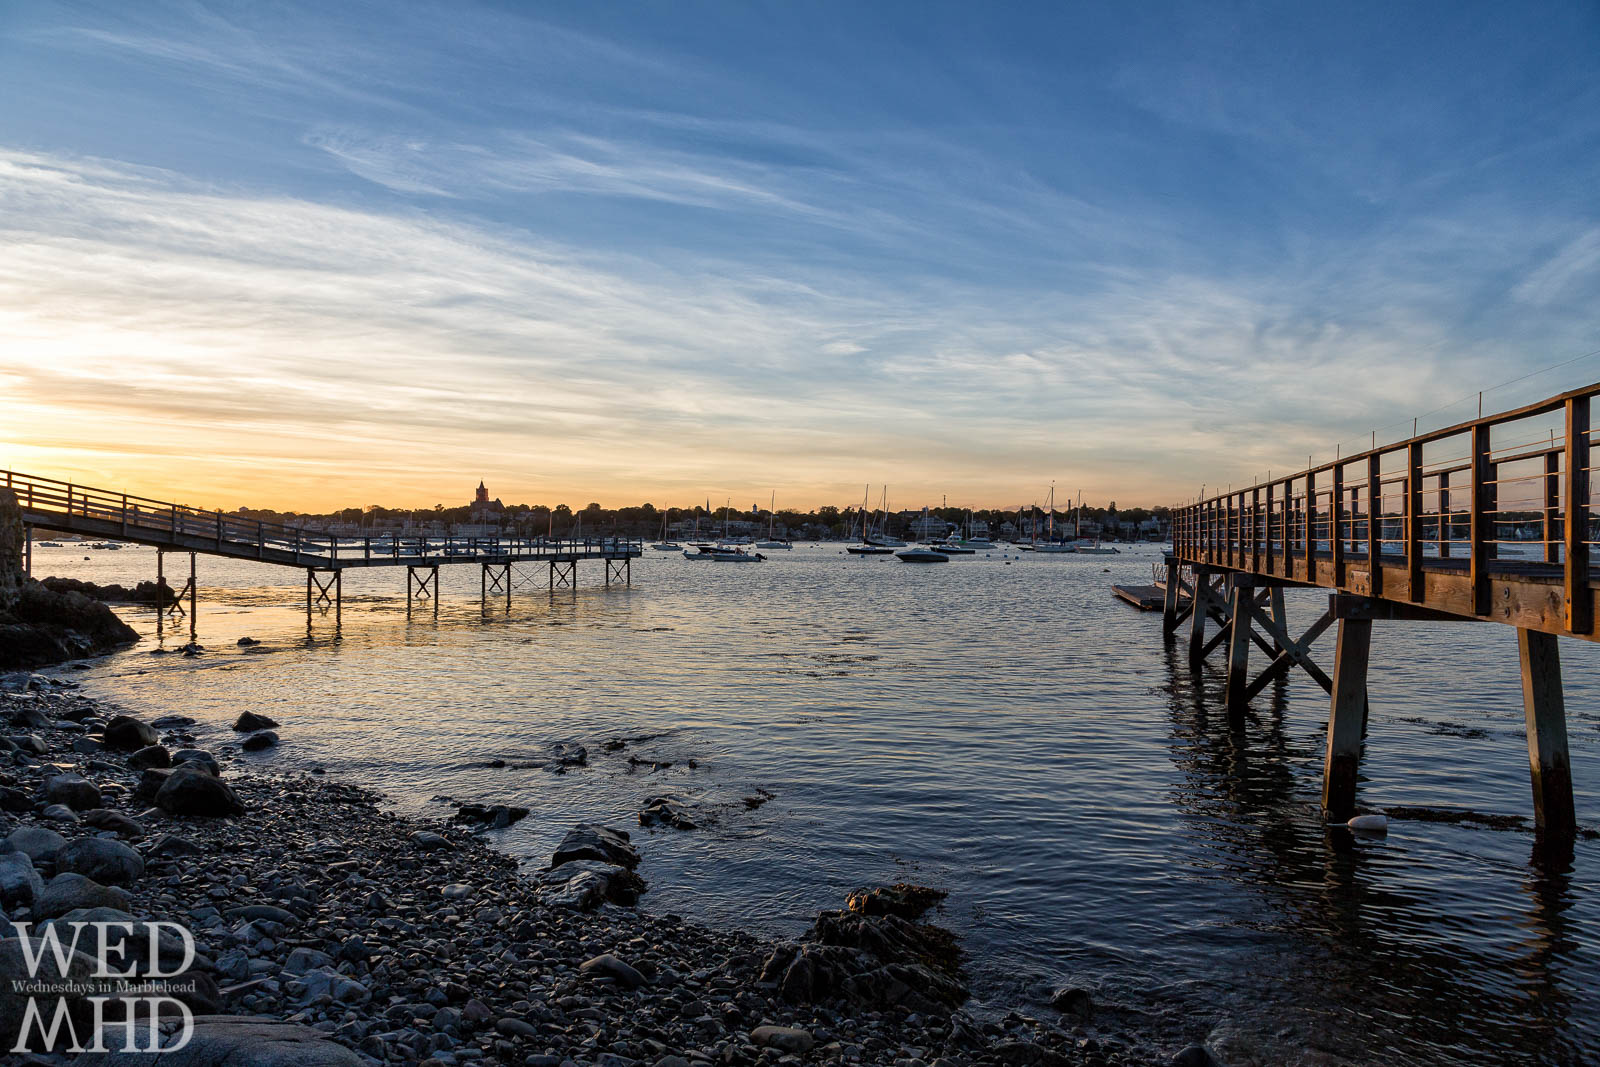 docks on Marblehead Neck